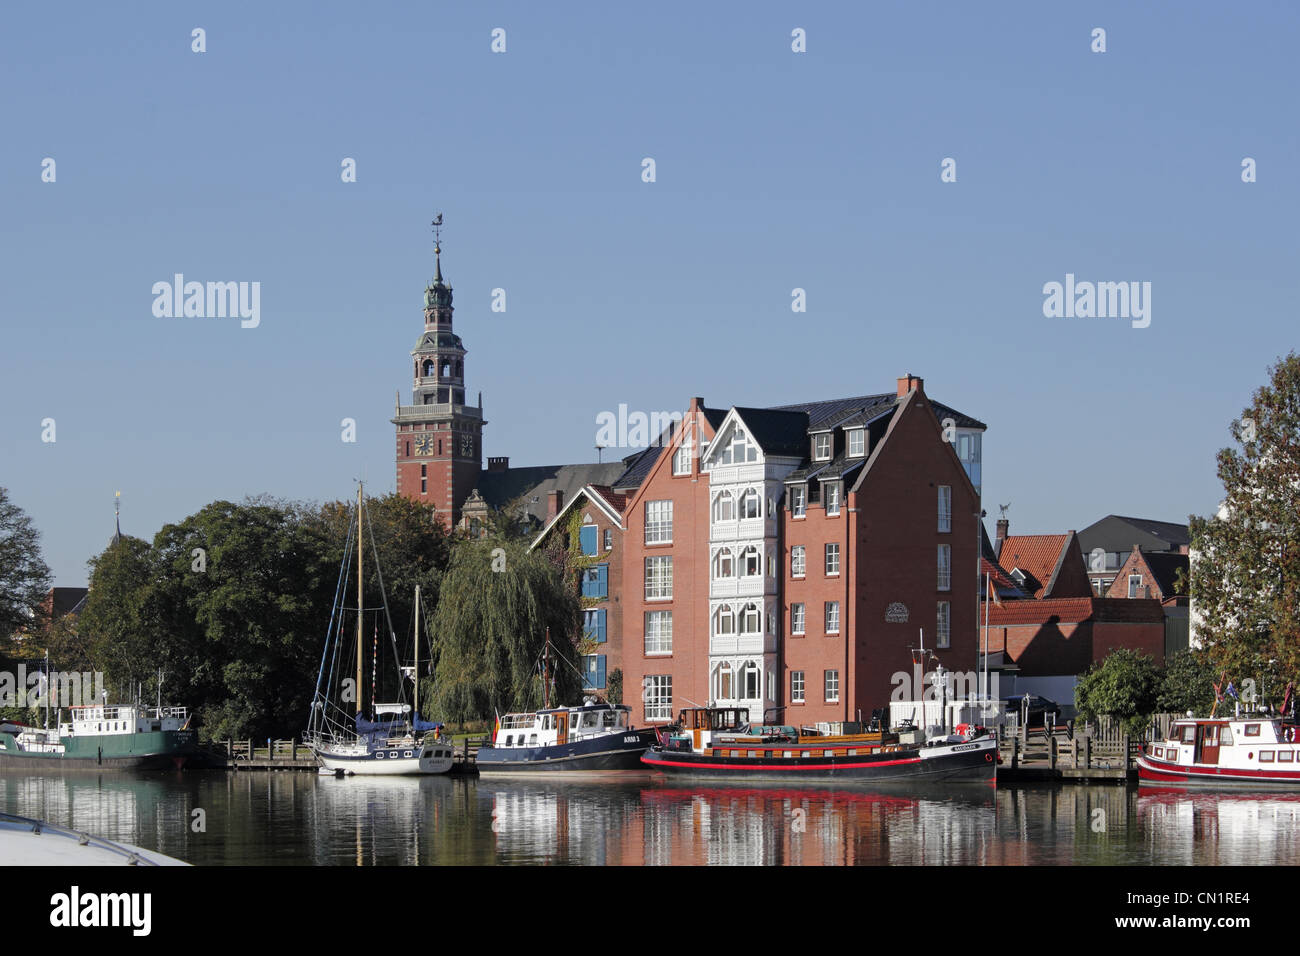 Germany Lower Saxony Leer Harbor - Stock Image